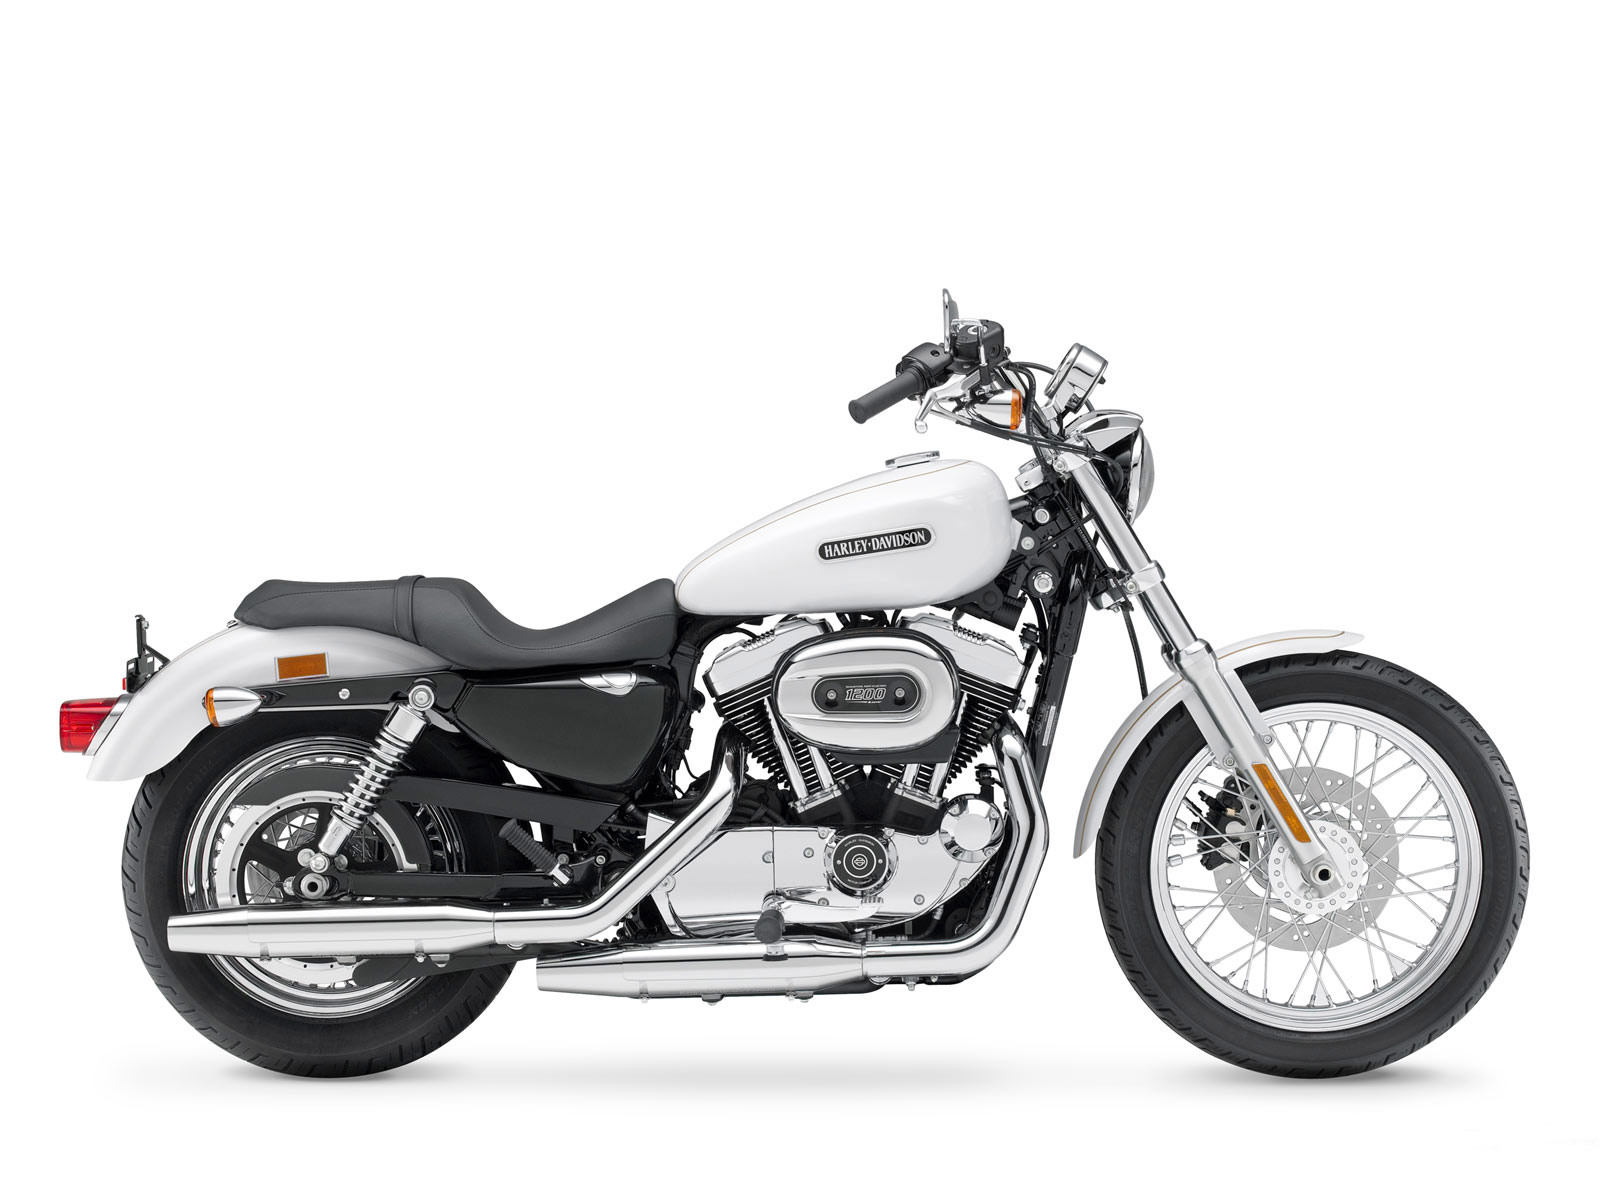 2008 harley davidson xl1200l sportster 1200 low pictures. Black Bedroom Furniture Sets. Home Design Ideas